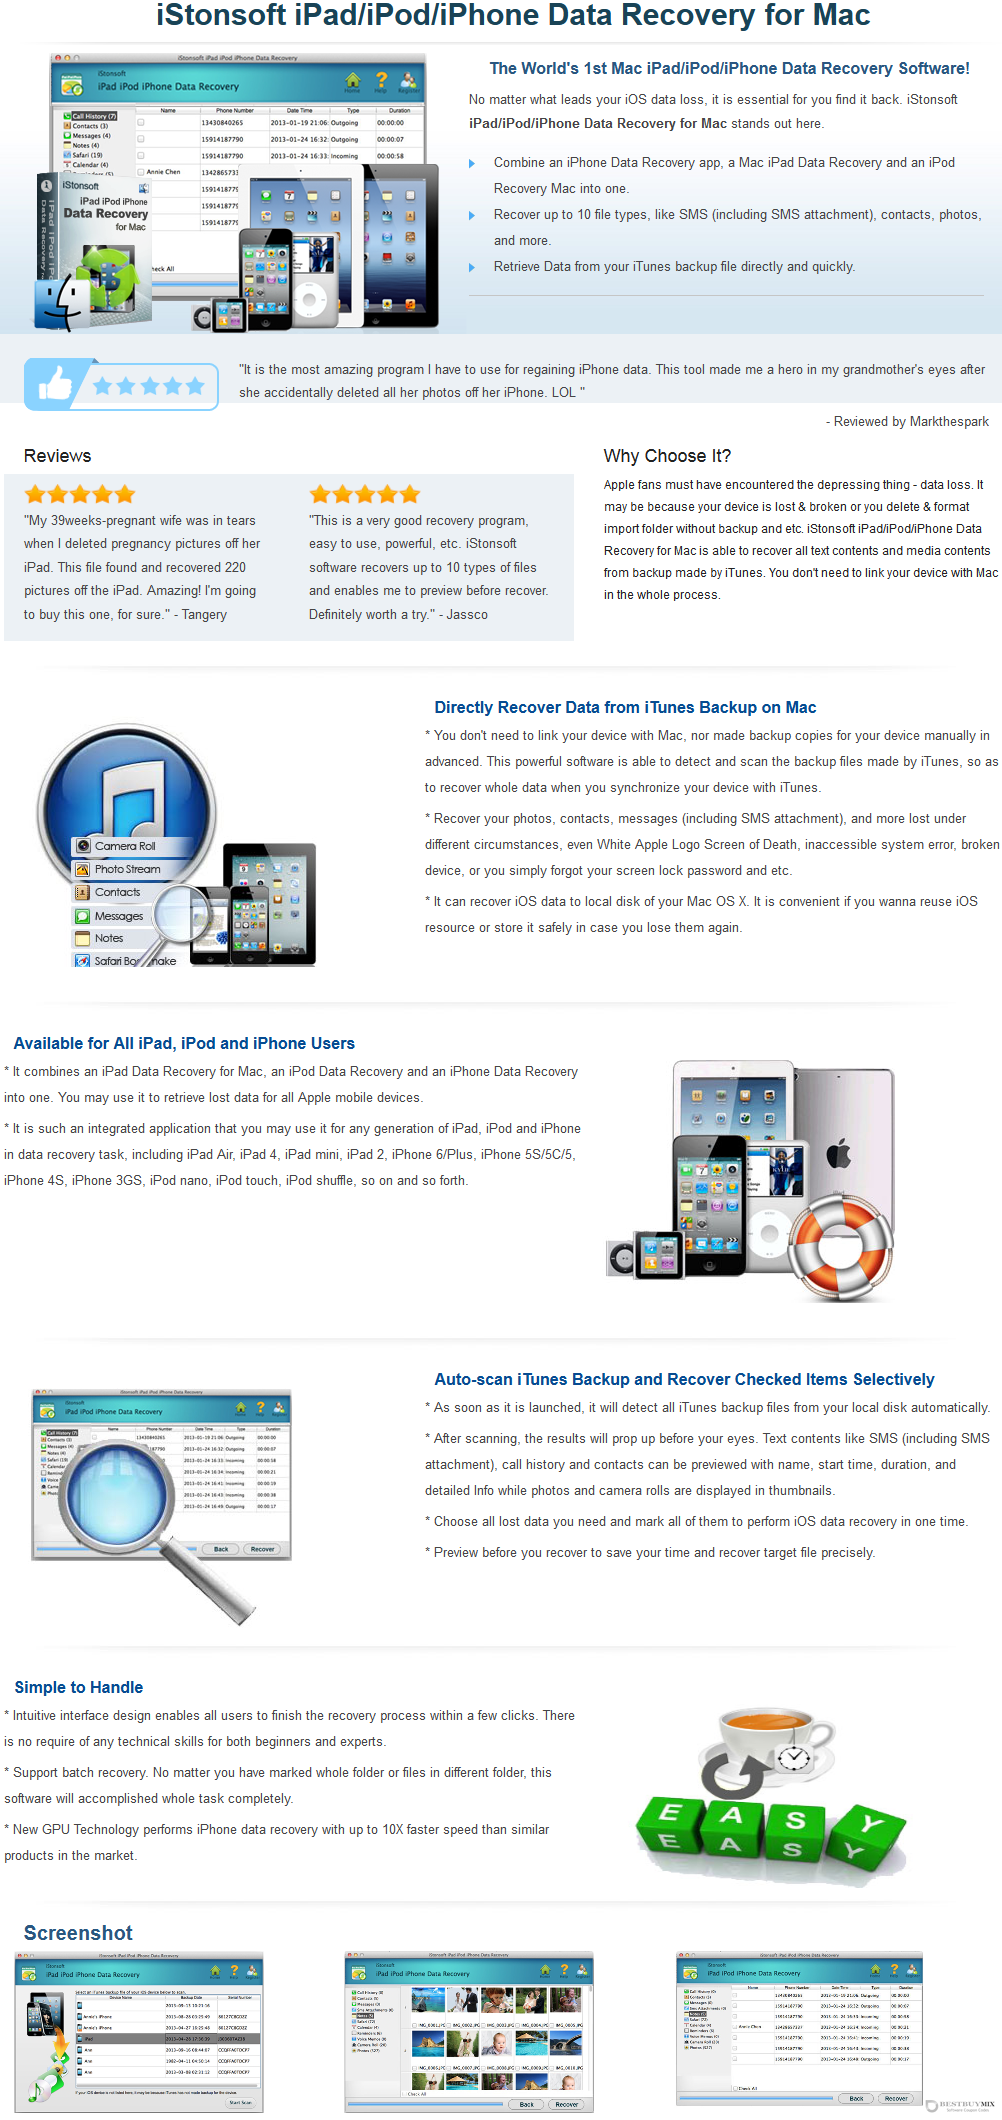 iStonsoft iPad/iPod/iPhone Data Recovery for Mac Discount Coupon Code